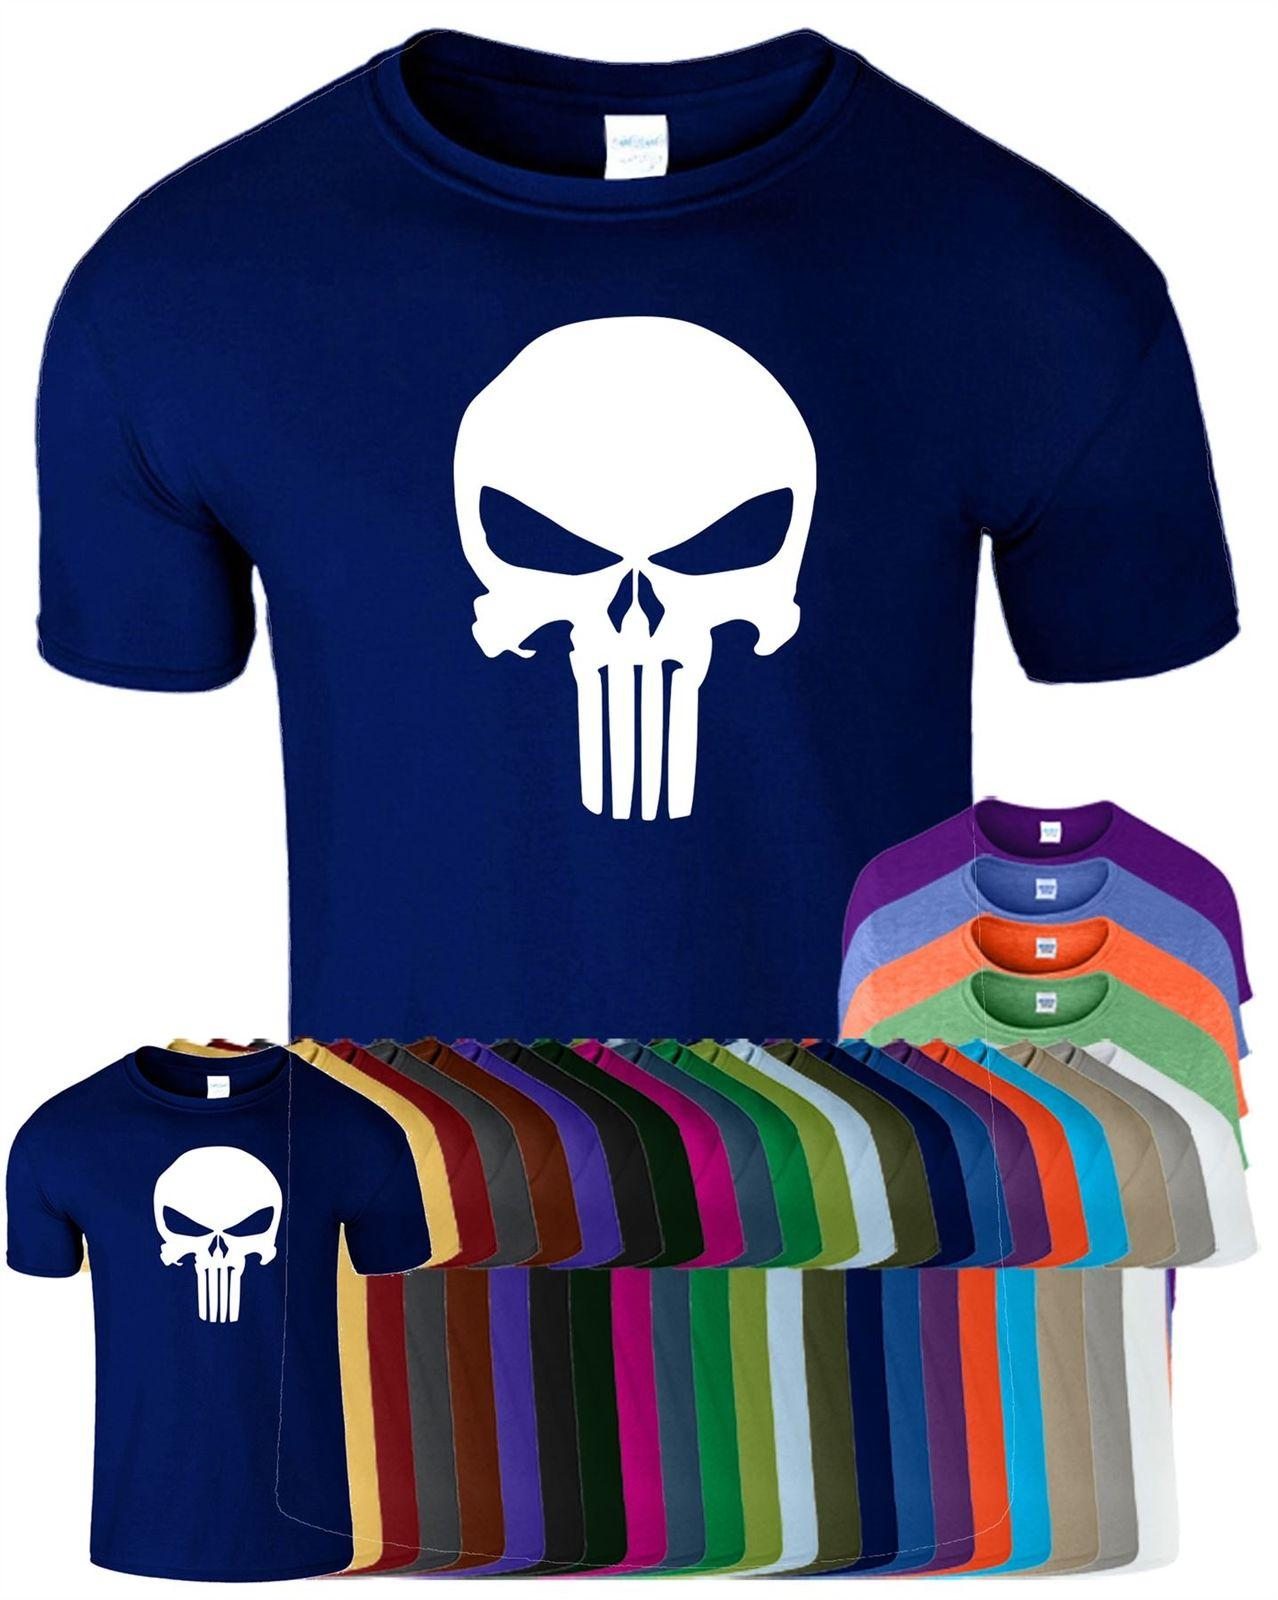 22662f829 Custom T ShiThe Punisher Skull Mens Gym T Shirt Training Bodybuilding Mua  Thai Top Tshirt Cool Casual Pride Quirky T Shirt Awesome T Shirts For Sale  From ...